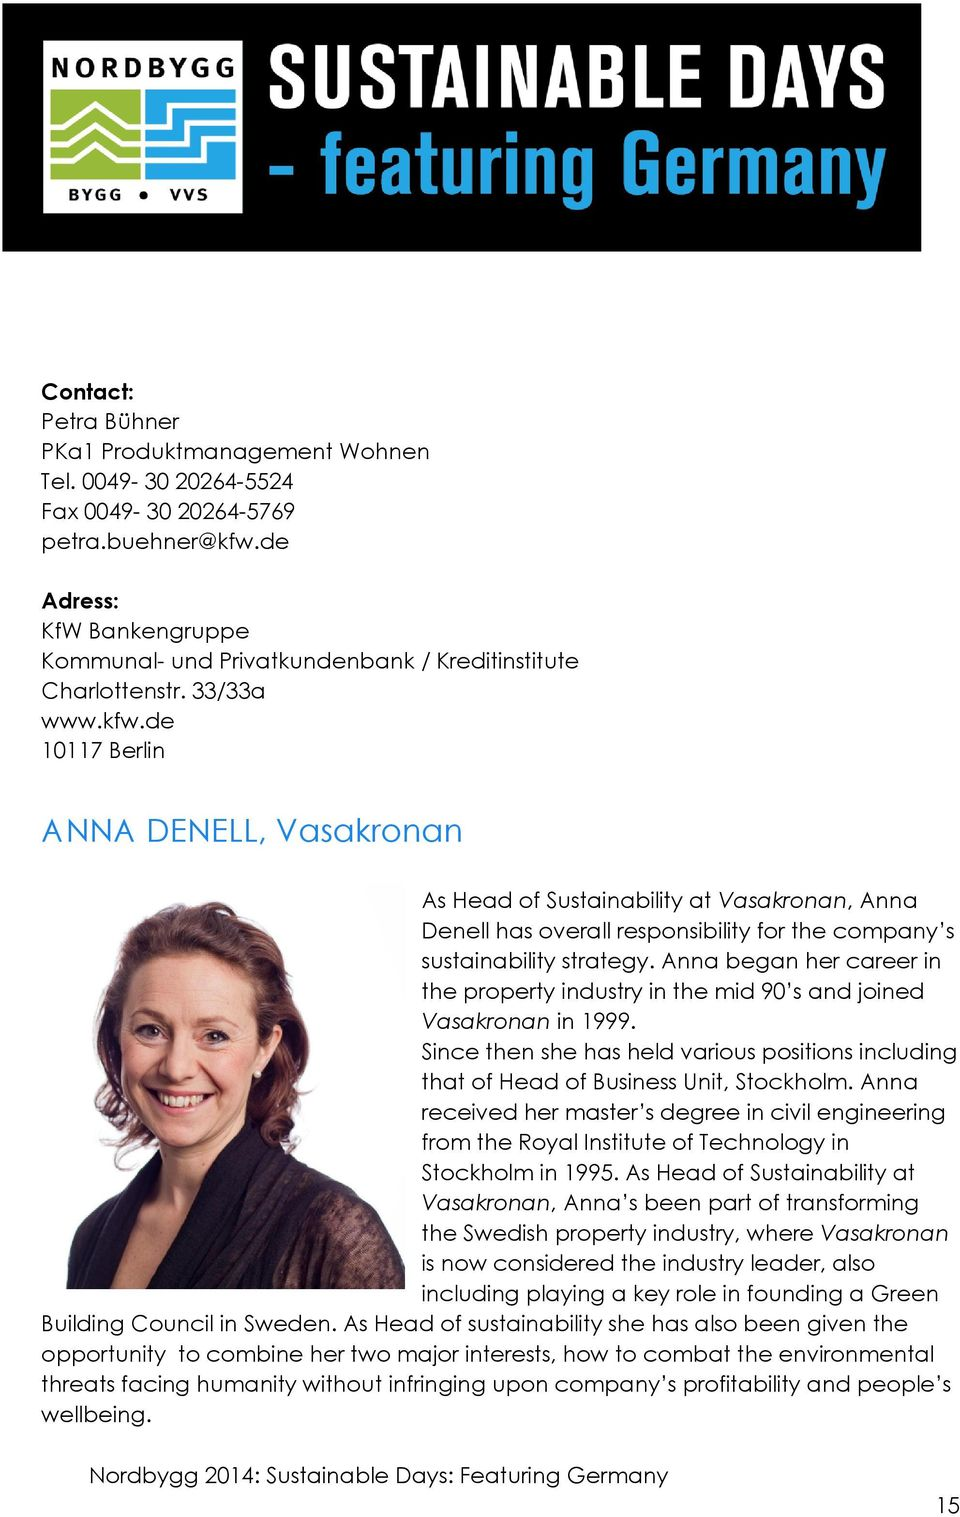 Anna began her career in the property industry in the mid 90 s and joined Vasakronan in 1999. Since then she has held various positions including that of Head of Business Unit, Stockholm.